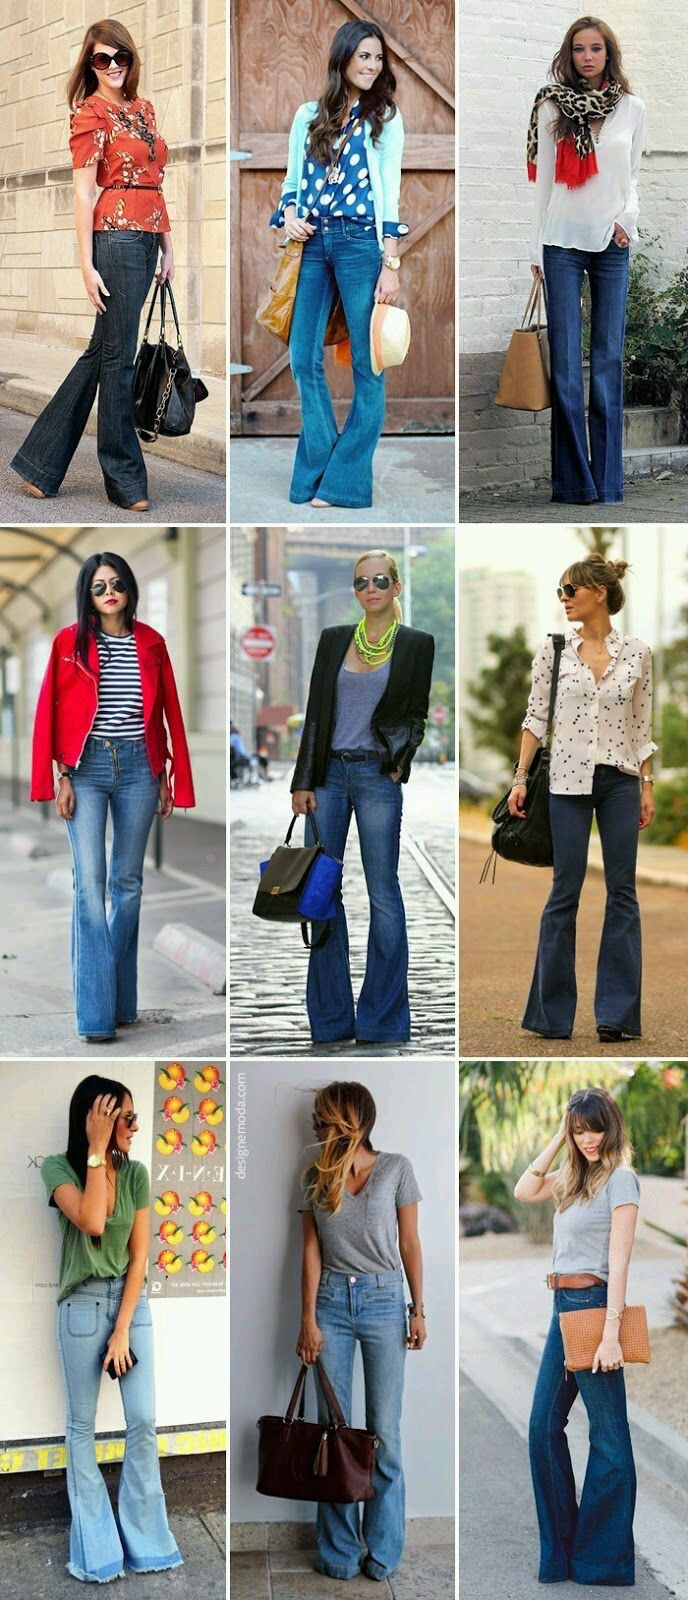 I am so glad the flares are back!!! Keep the best of the 90s revival coming please